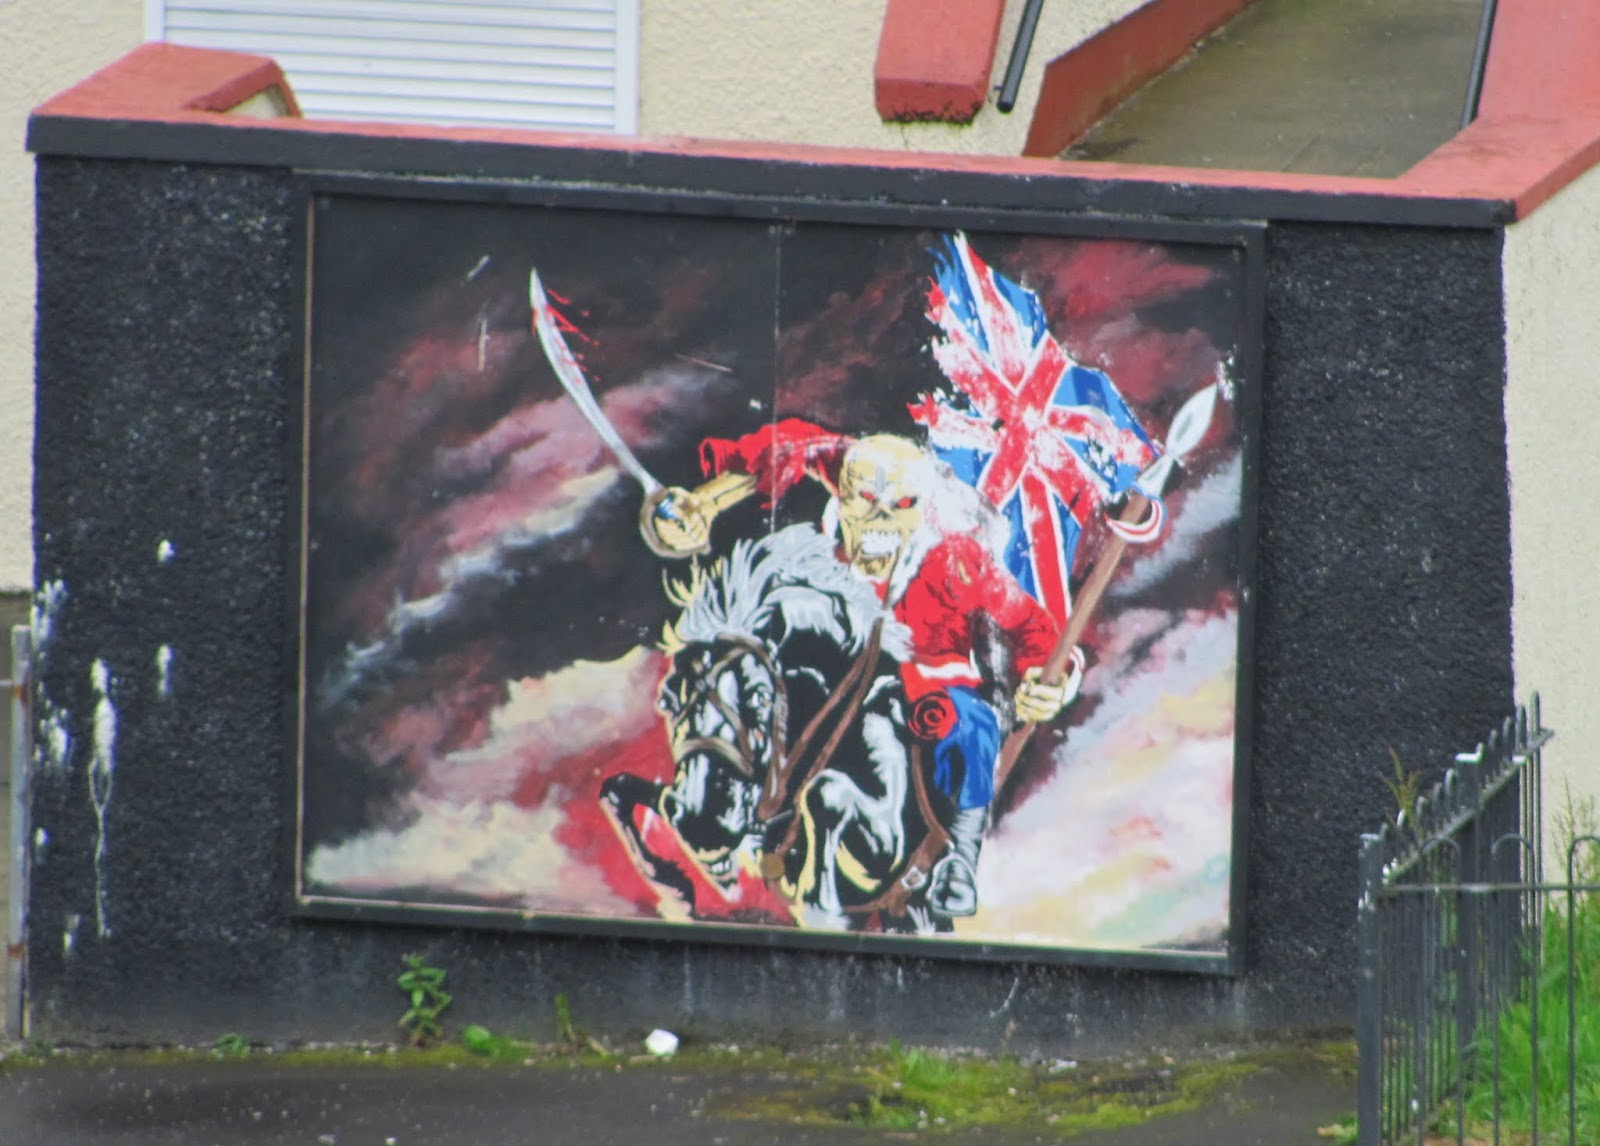 Iron Maiden's Eddie Hoover, Symbol of Britain's Military Might in Derry, Northern Ireland